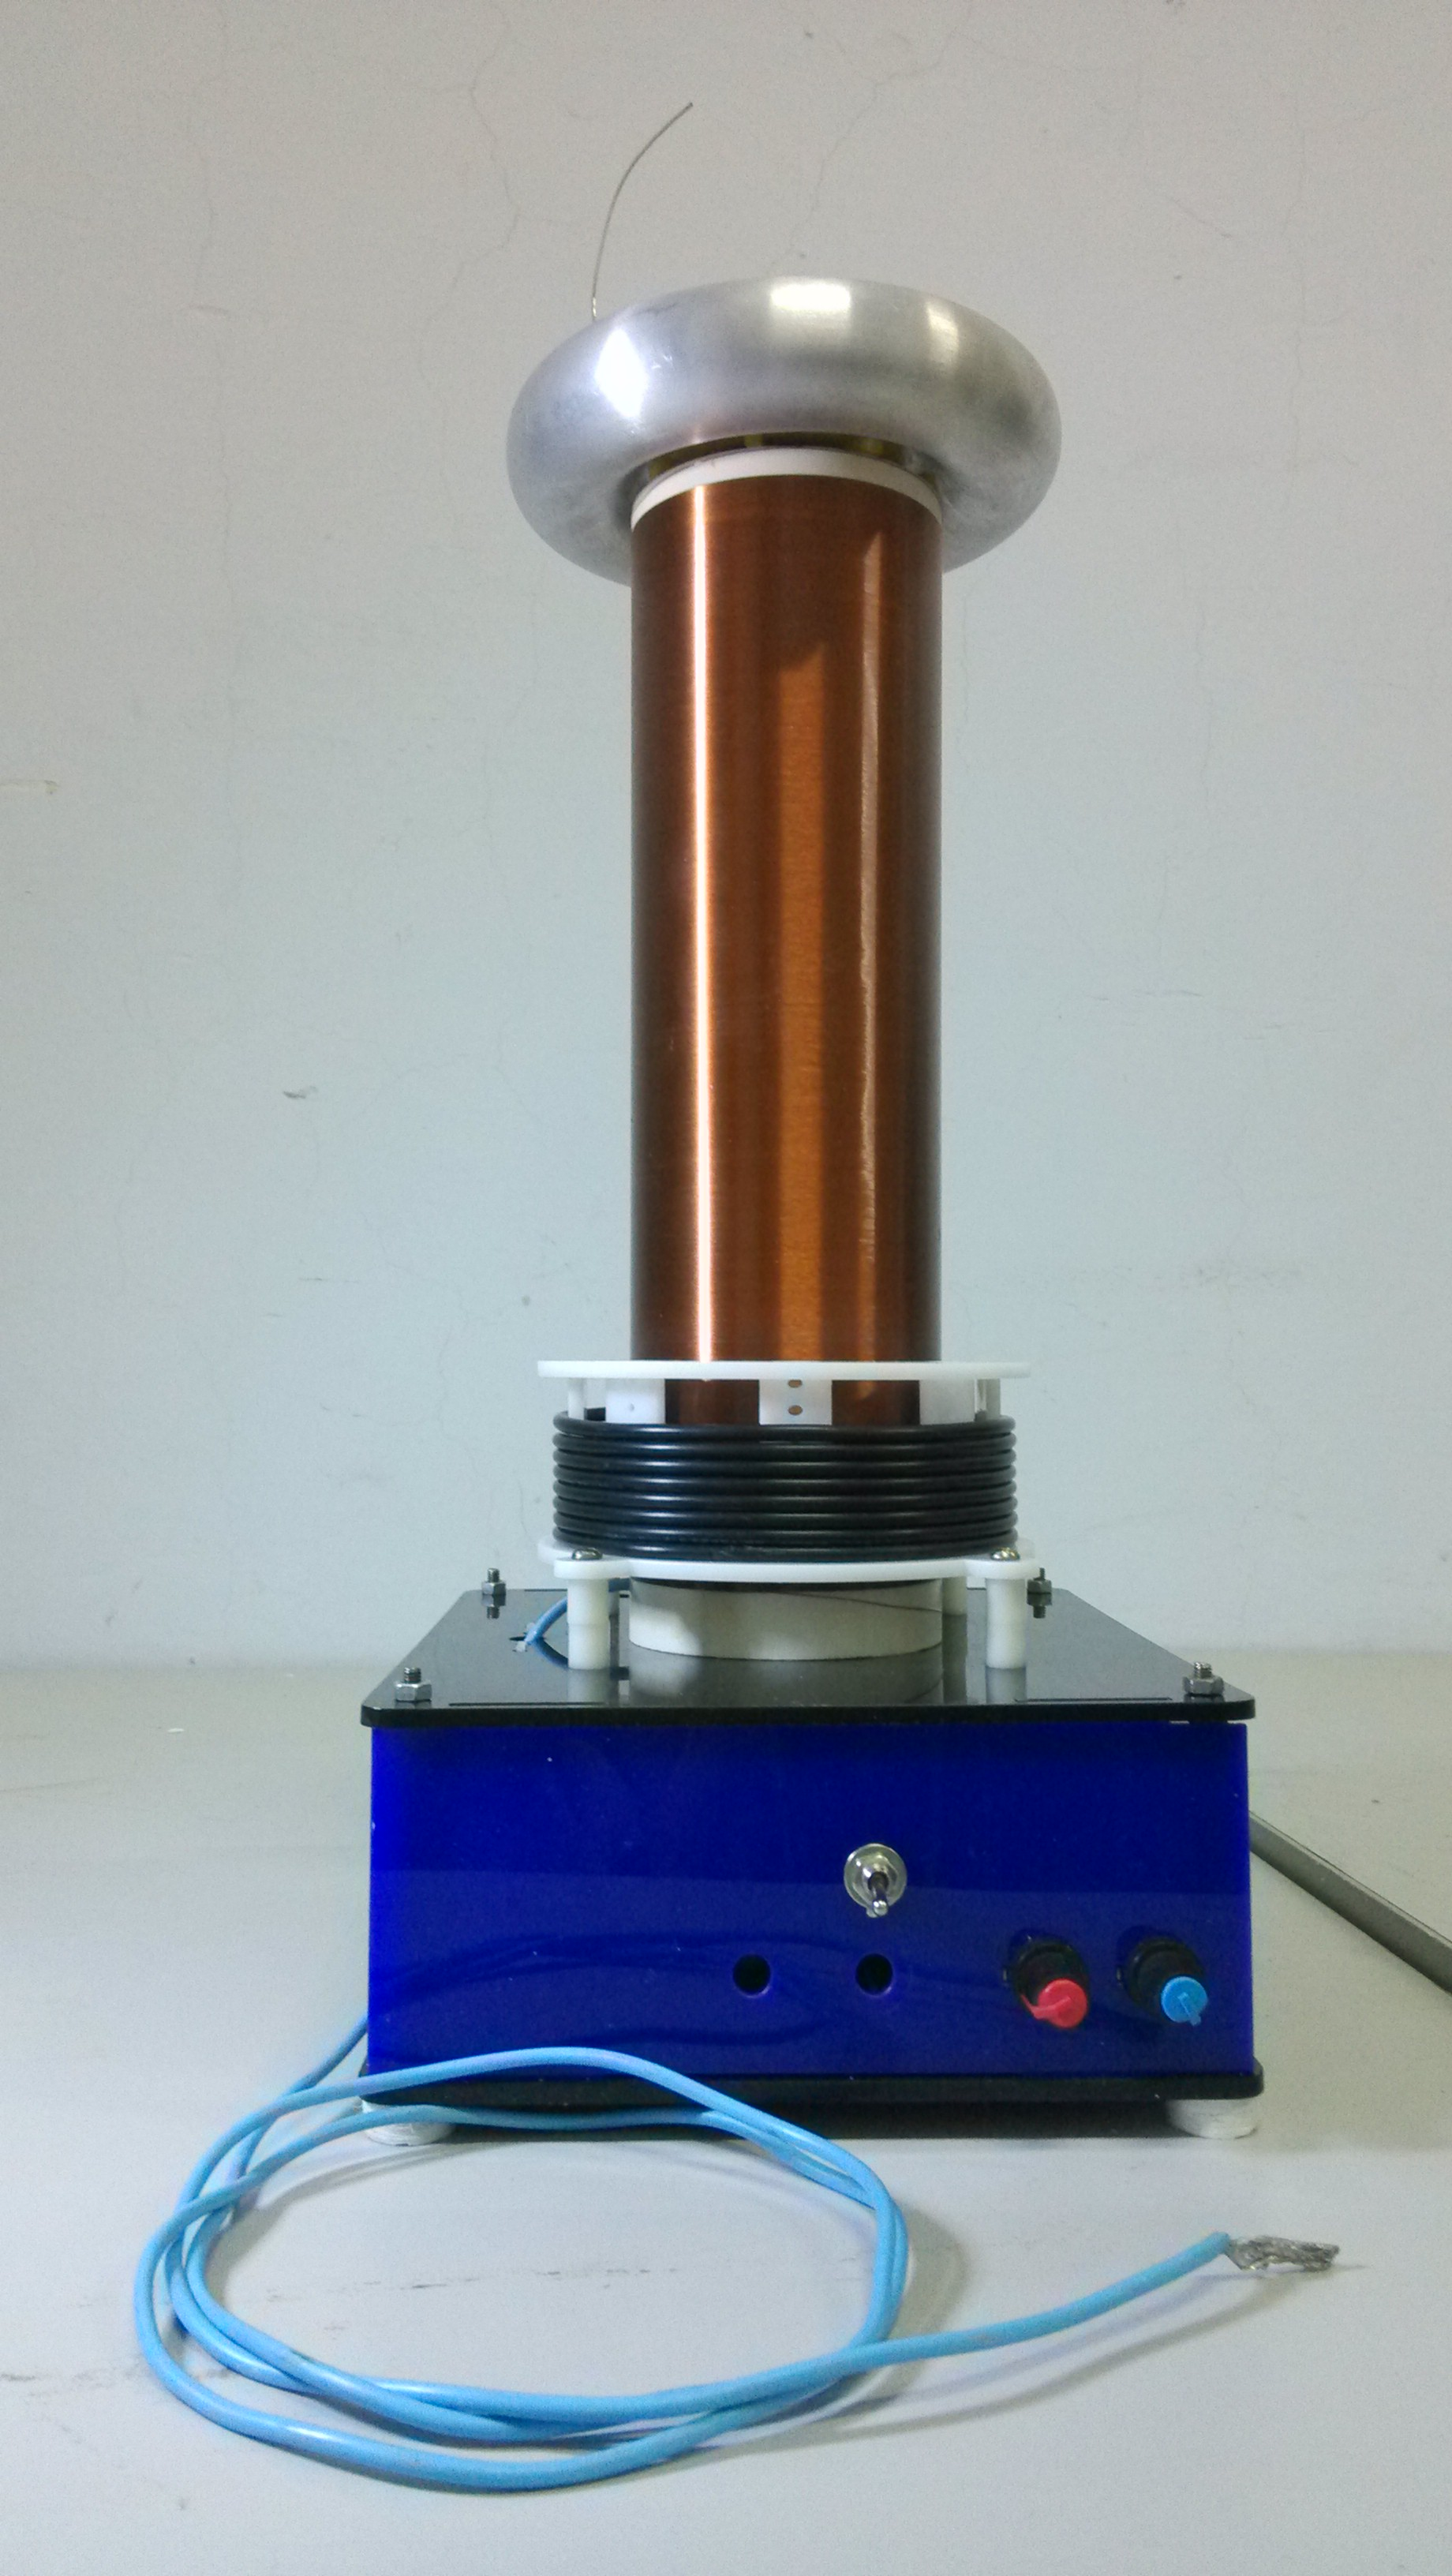 2017 music solid-state Tesla coil sstc tesla coil solid state tesla